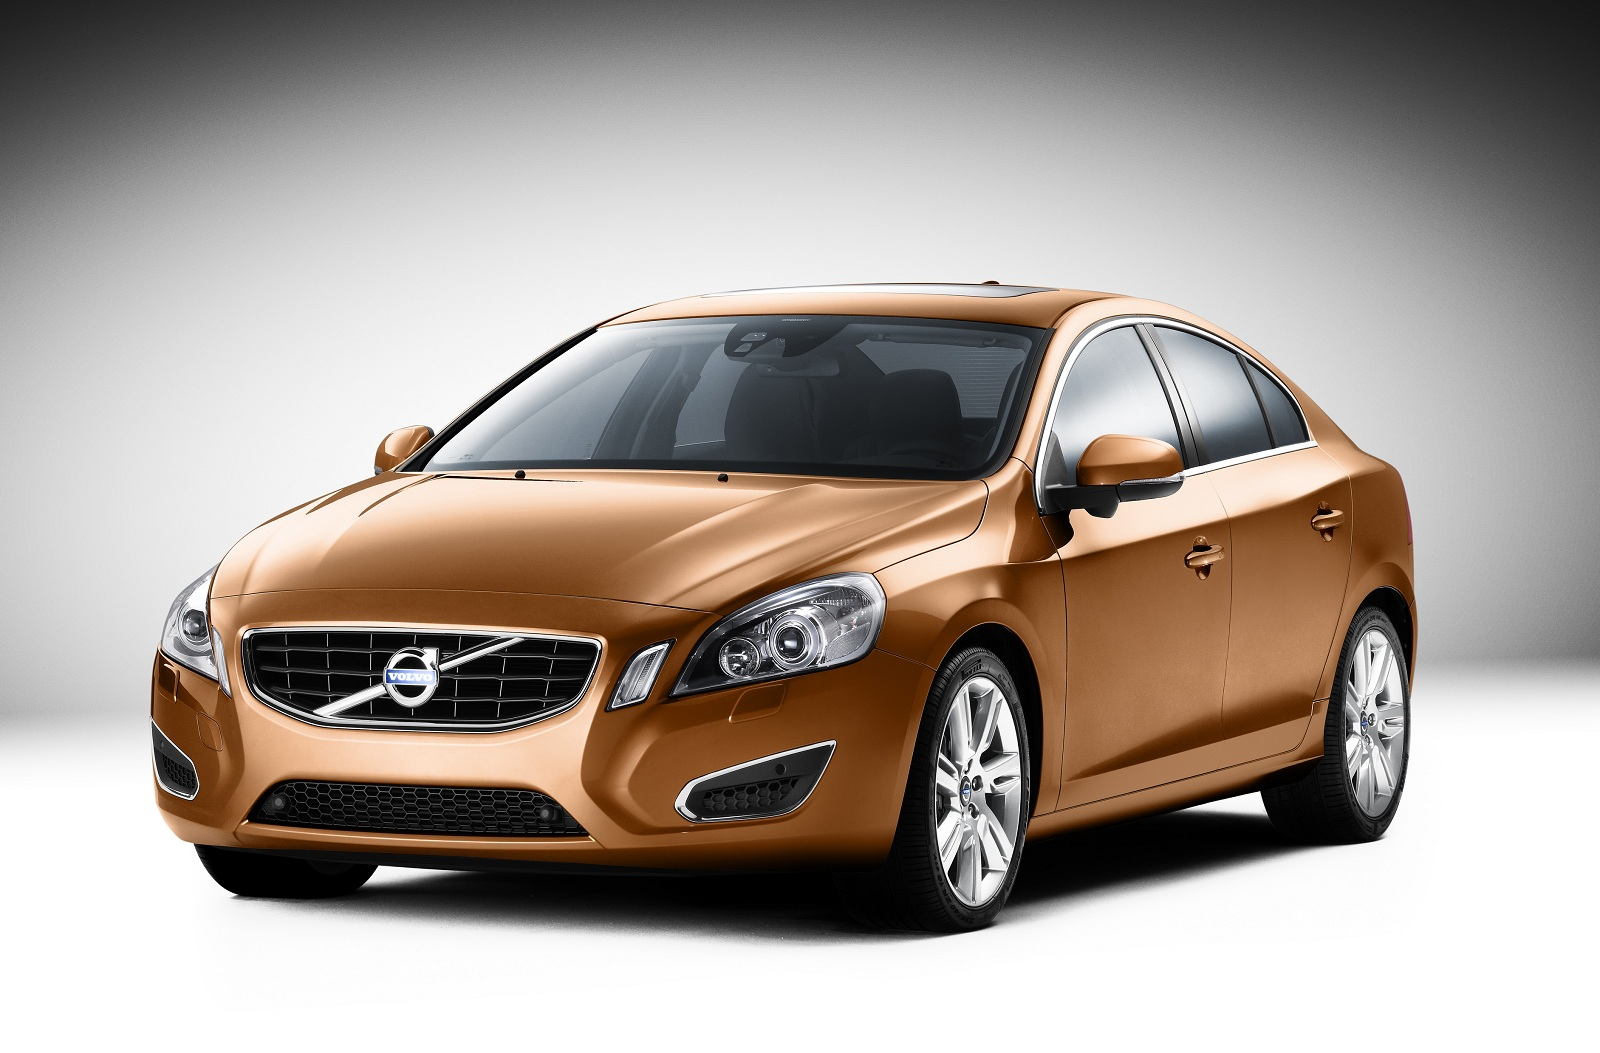 volvo has released the first image of their new s60 Wallpaper Backgrounds